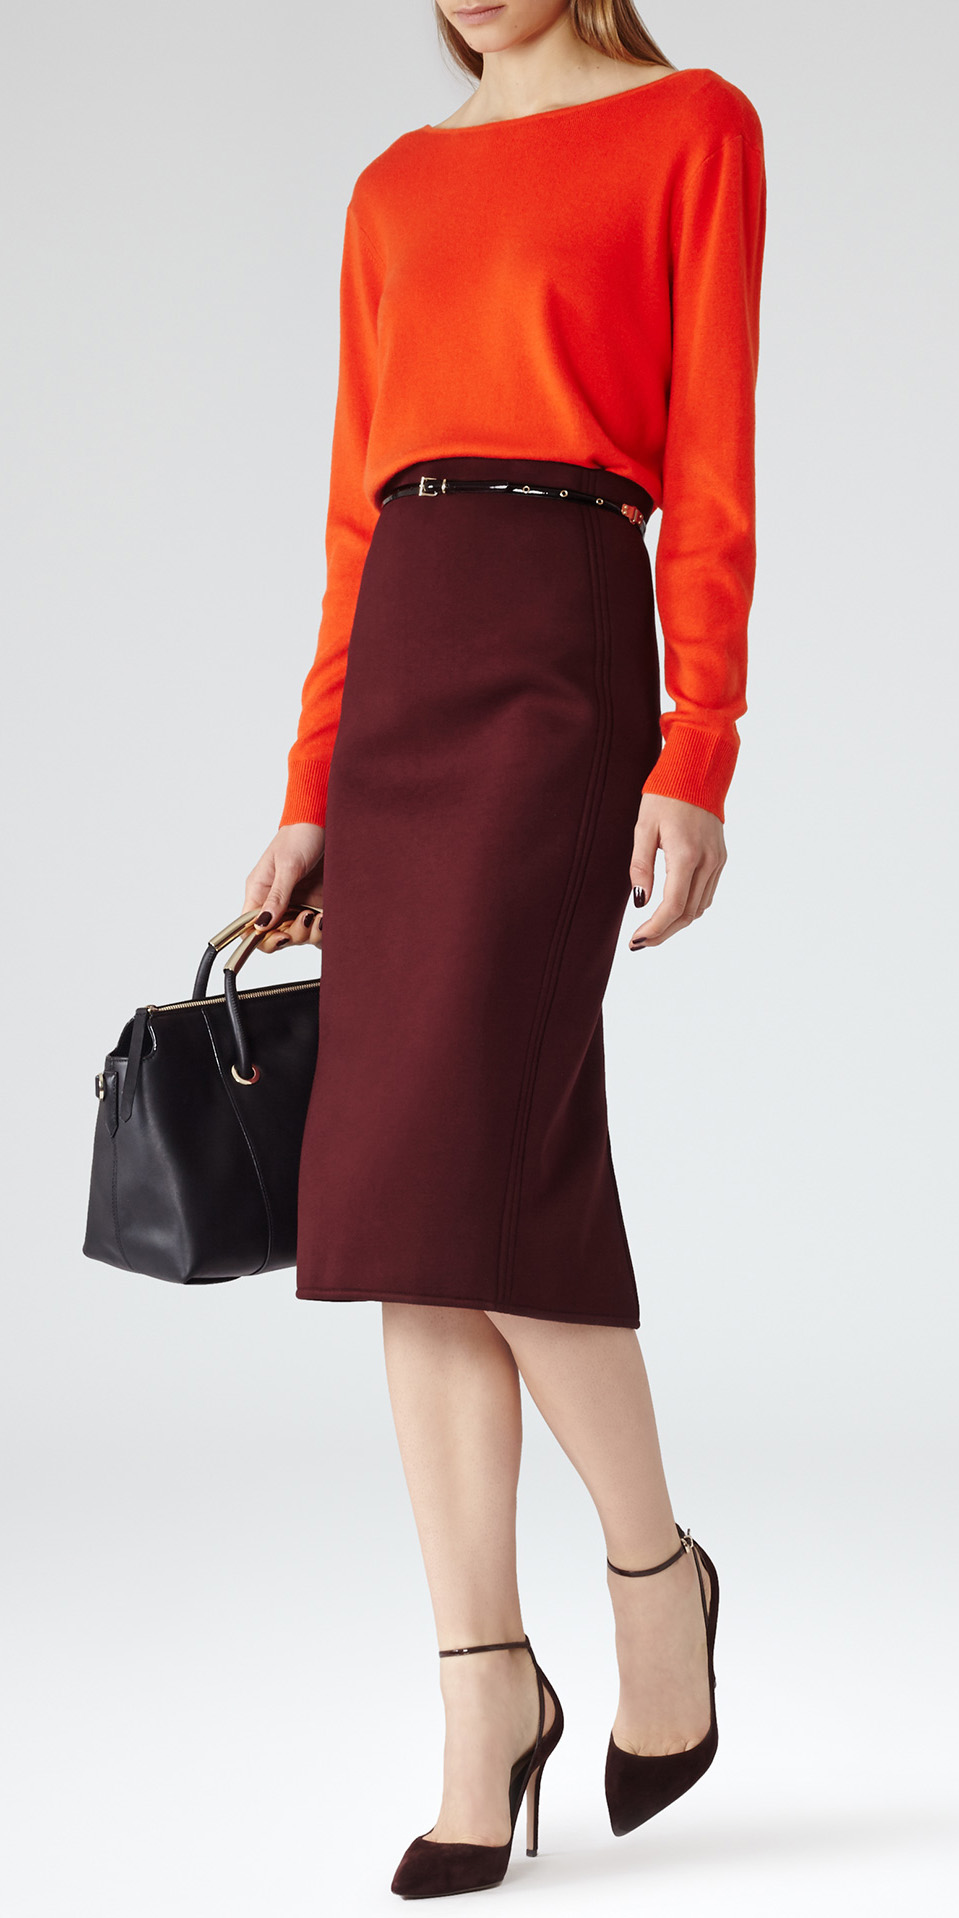 burgundy-pencil-skirt-orange-sweater-skinny-belt-black-bag-black-shoe-pumps-fall-winter-work.jpeg